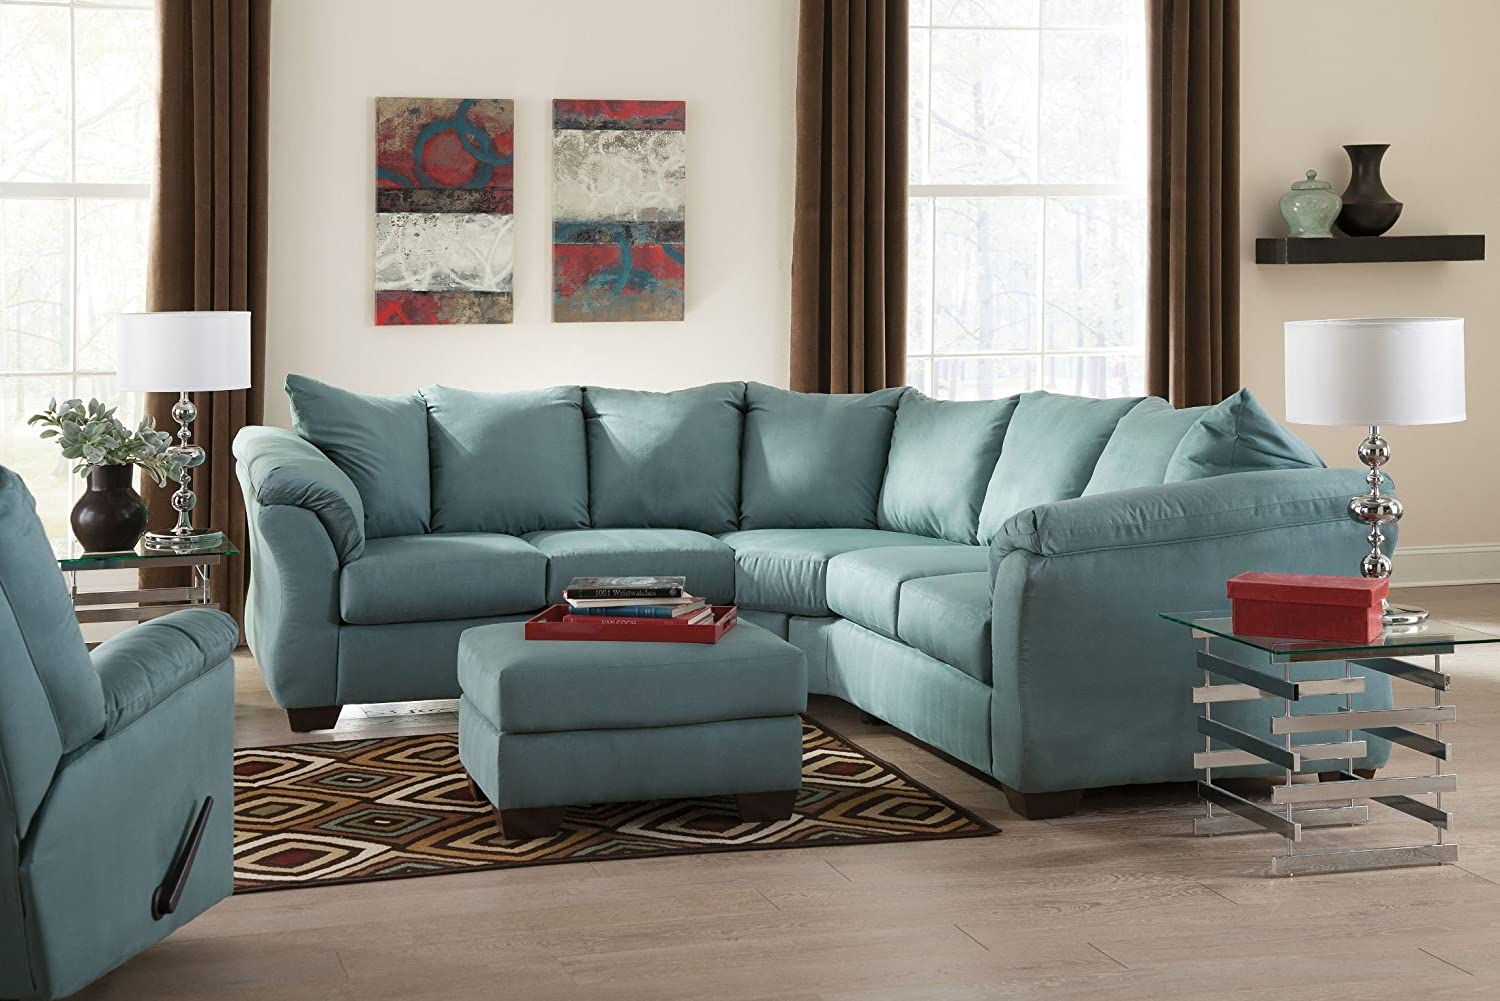 Ashley Darcy 75006-55-56 Stationary Fabric Sectional Sofa with 5 Loose Seat Cushions and Plush Padded Arms in